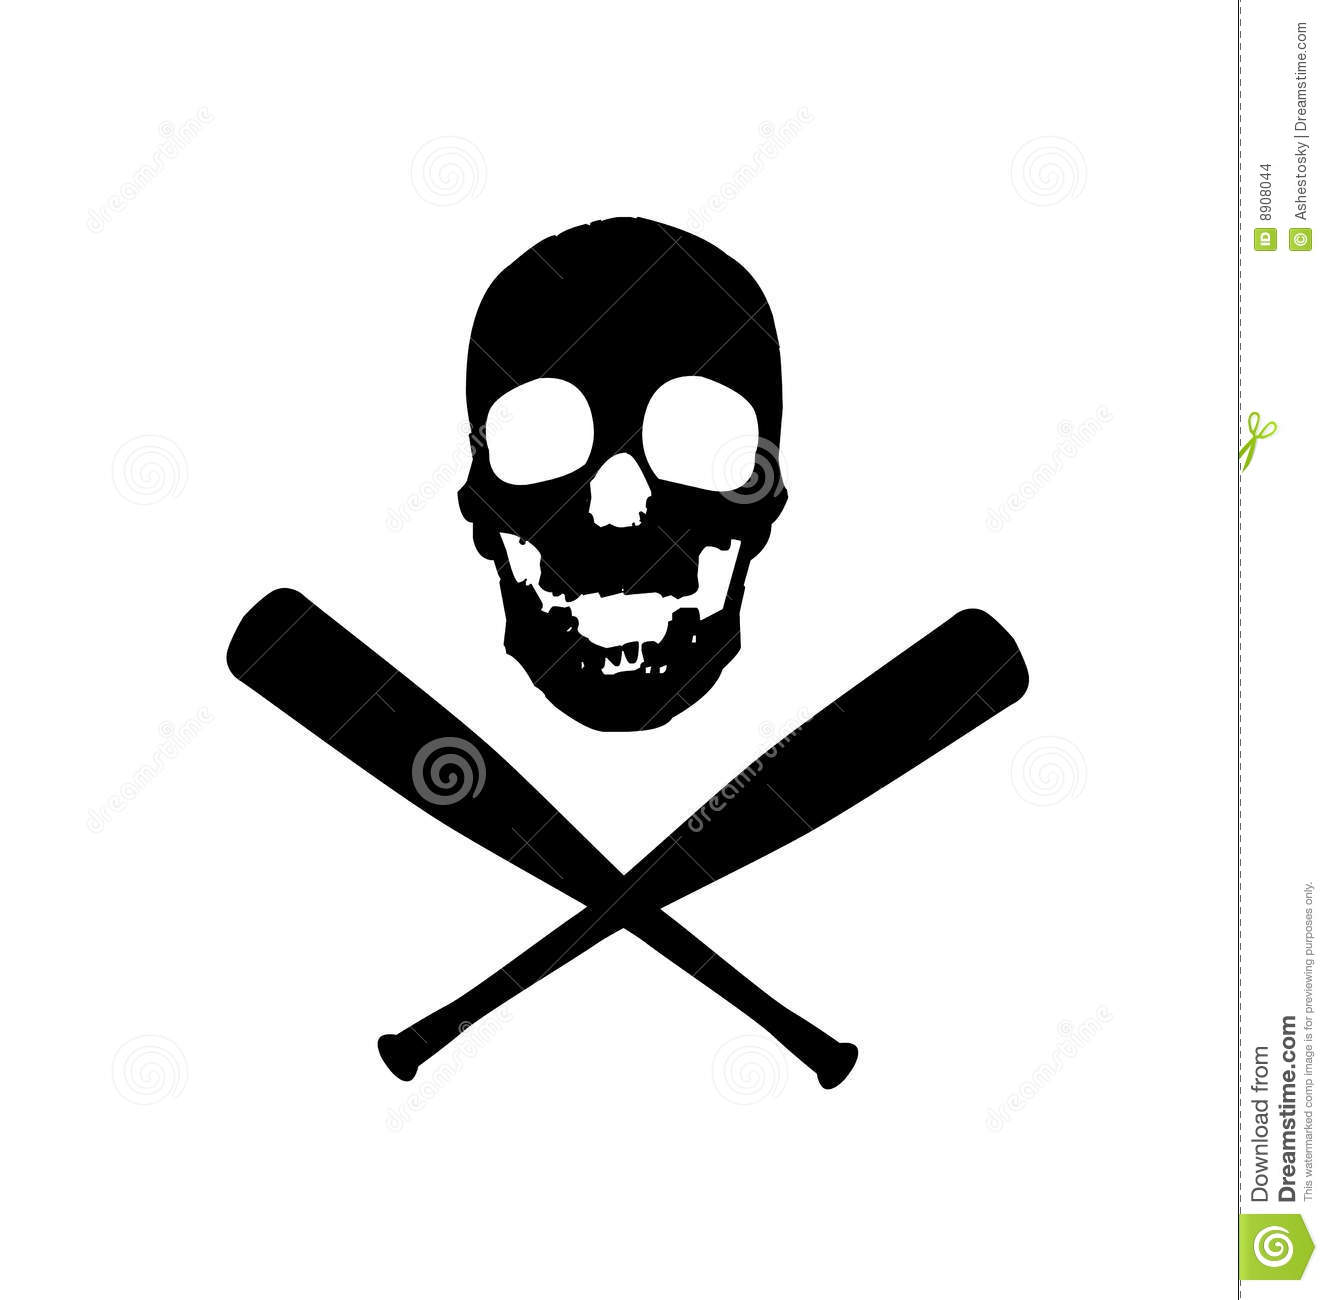 More similar stock images of ` Baseball pirates vector design `